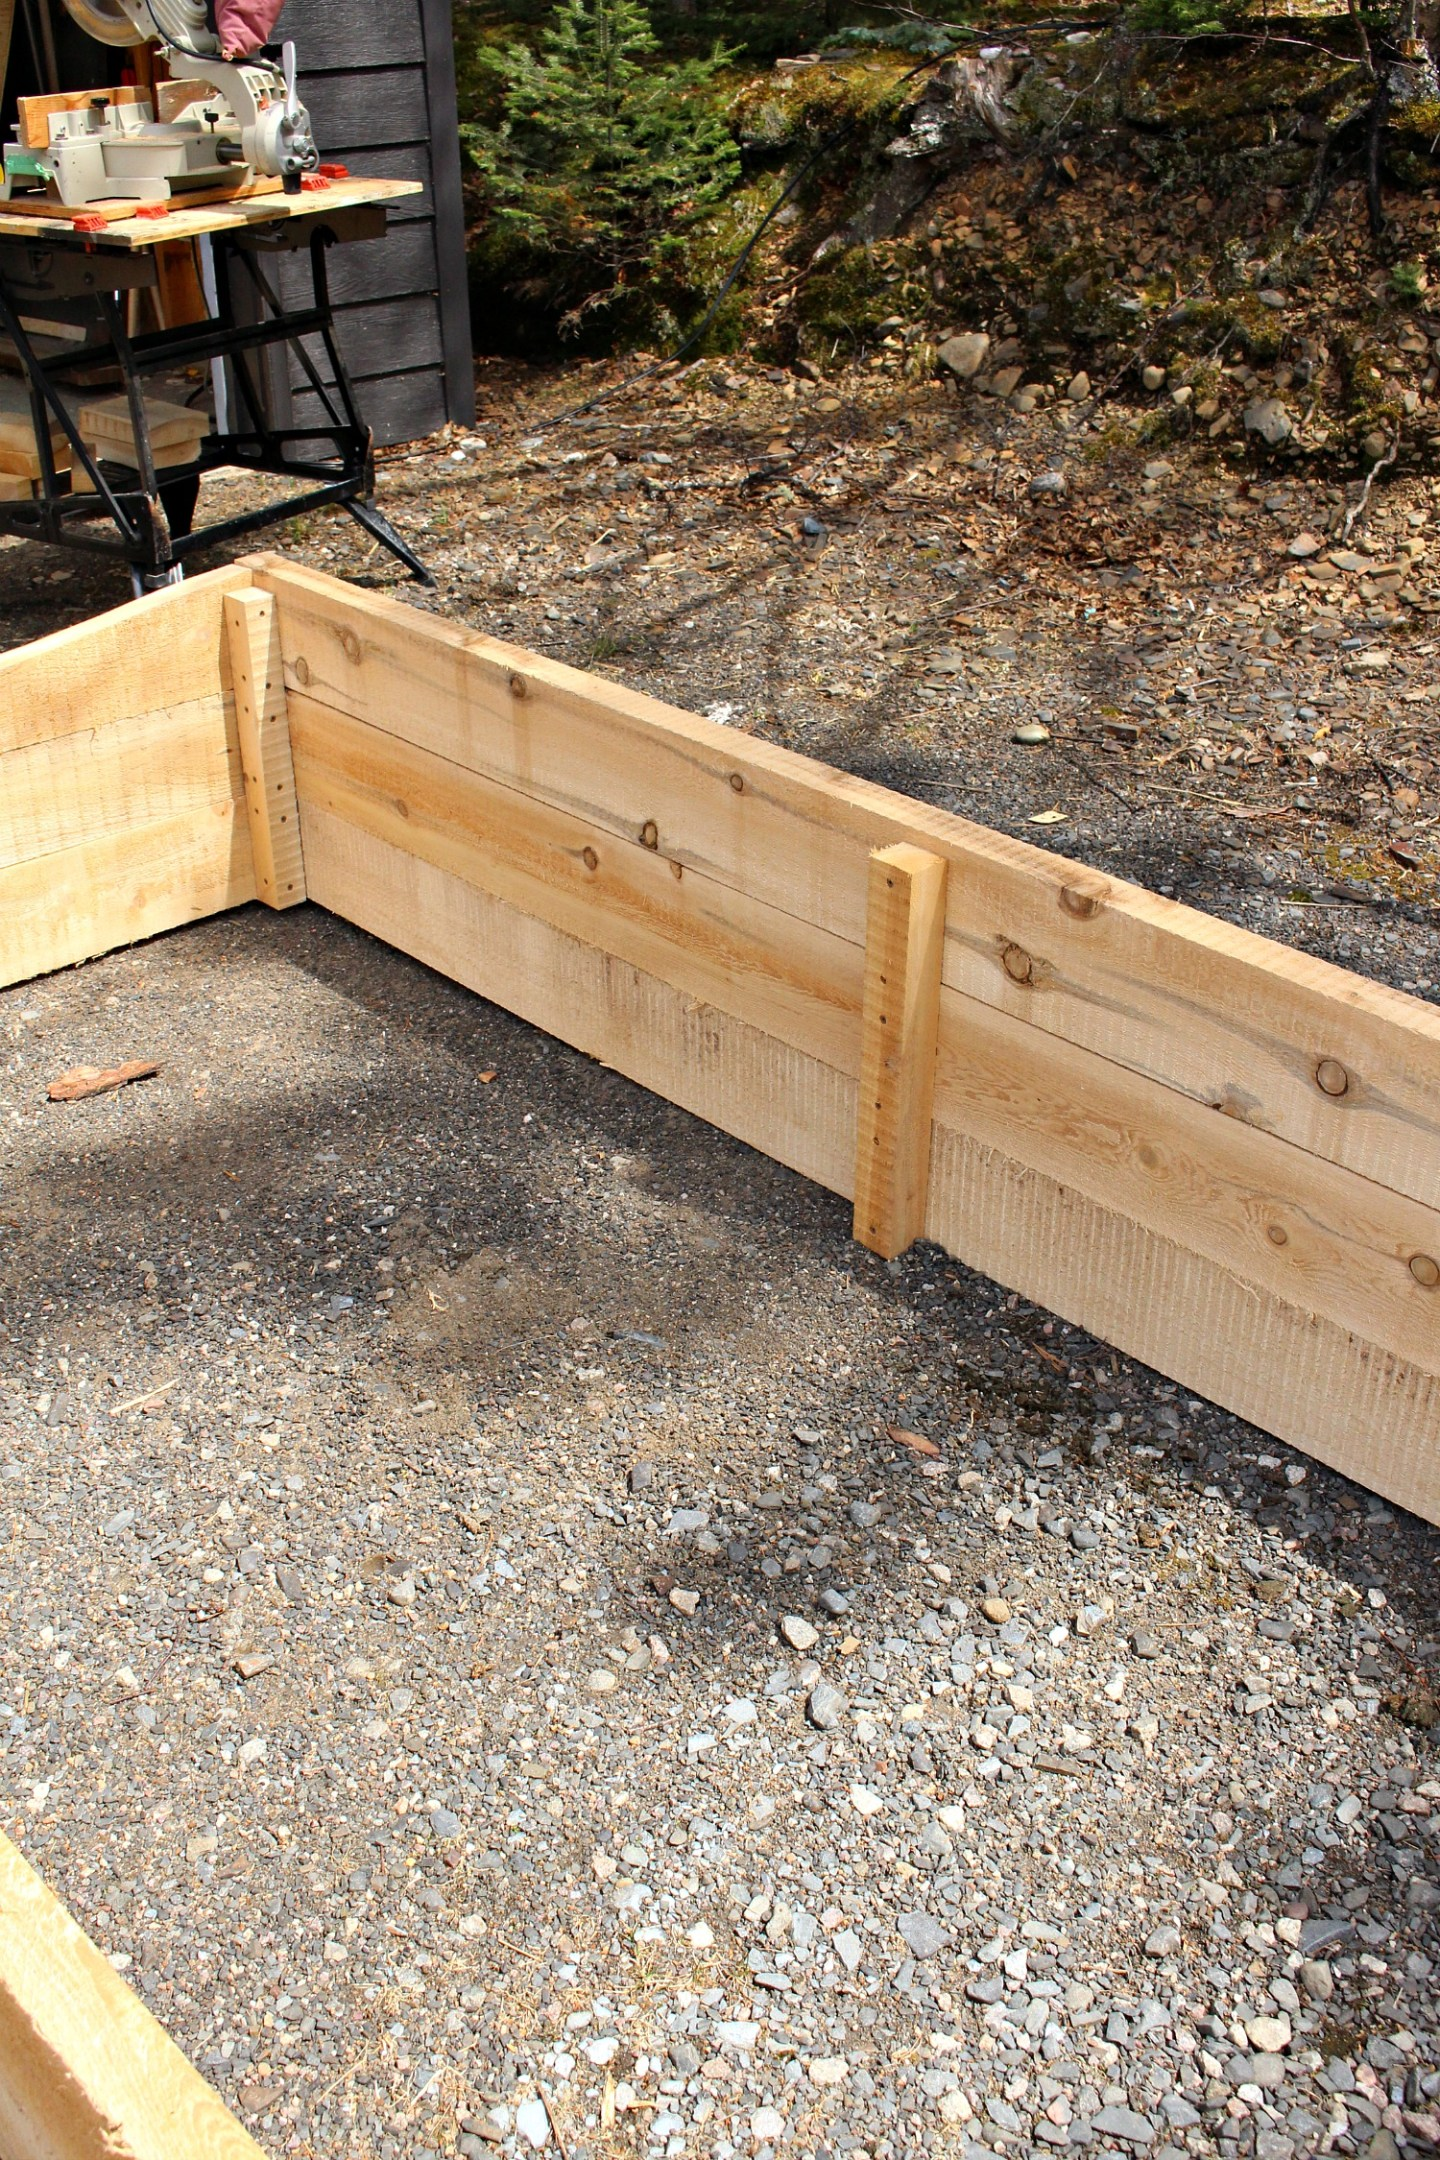 How to Make a Garden Bed